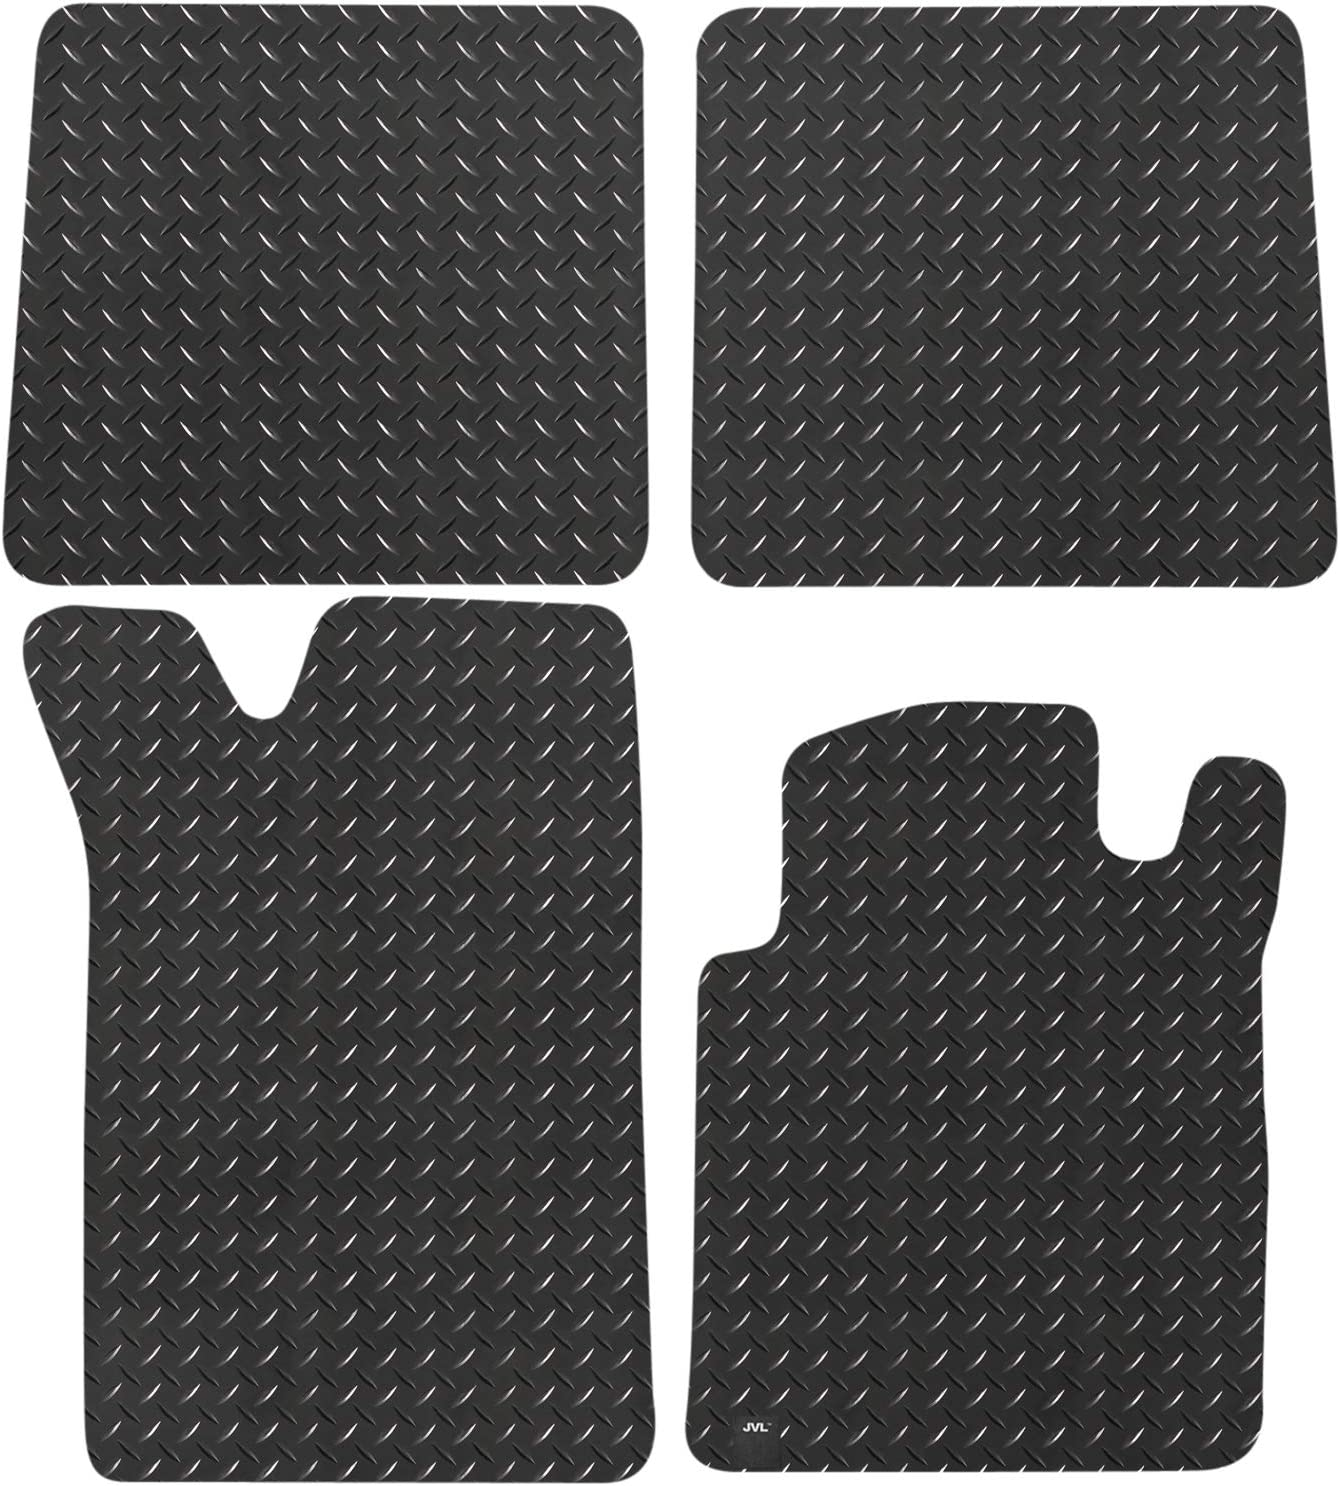 Fully Tailored Rubber Car Mats Set of 3